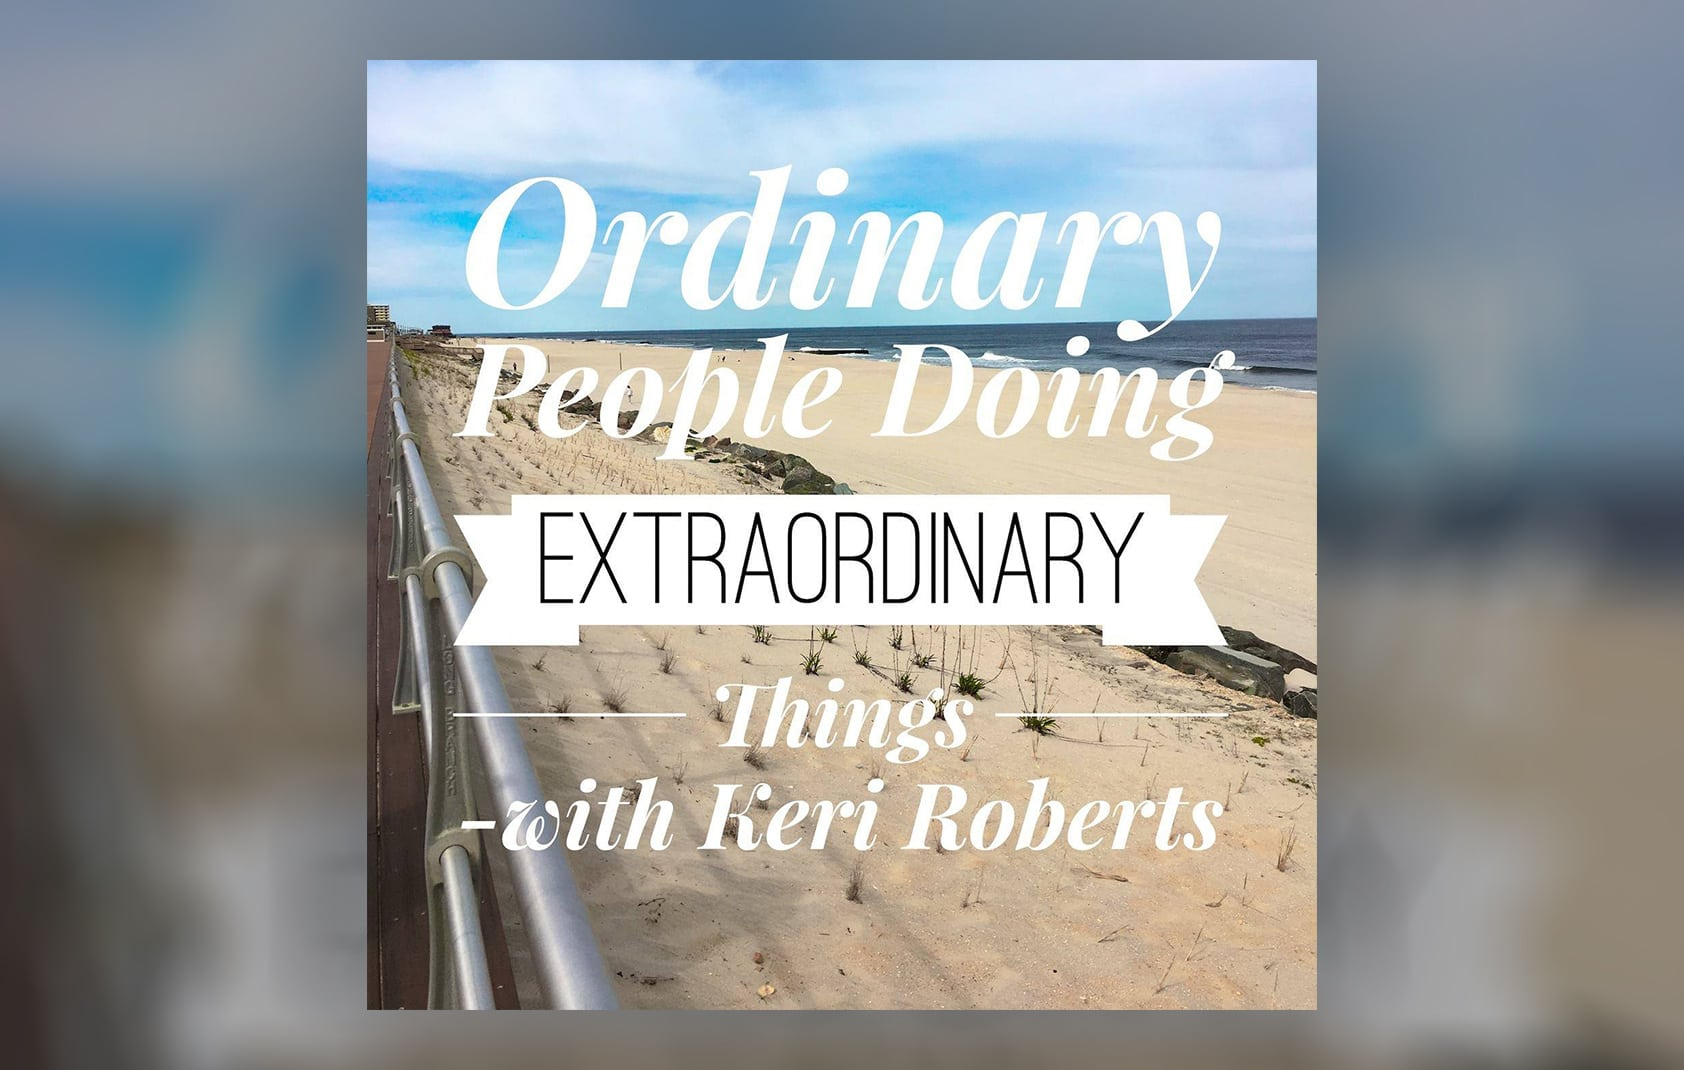 How to Tell Your Story | Interview with Keri Roberts on 'Ordinary People doing Extraordinary Things'